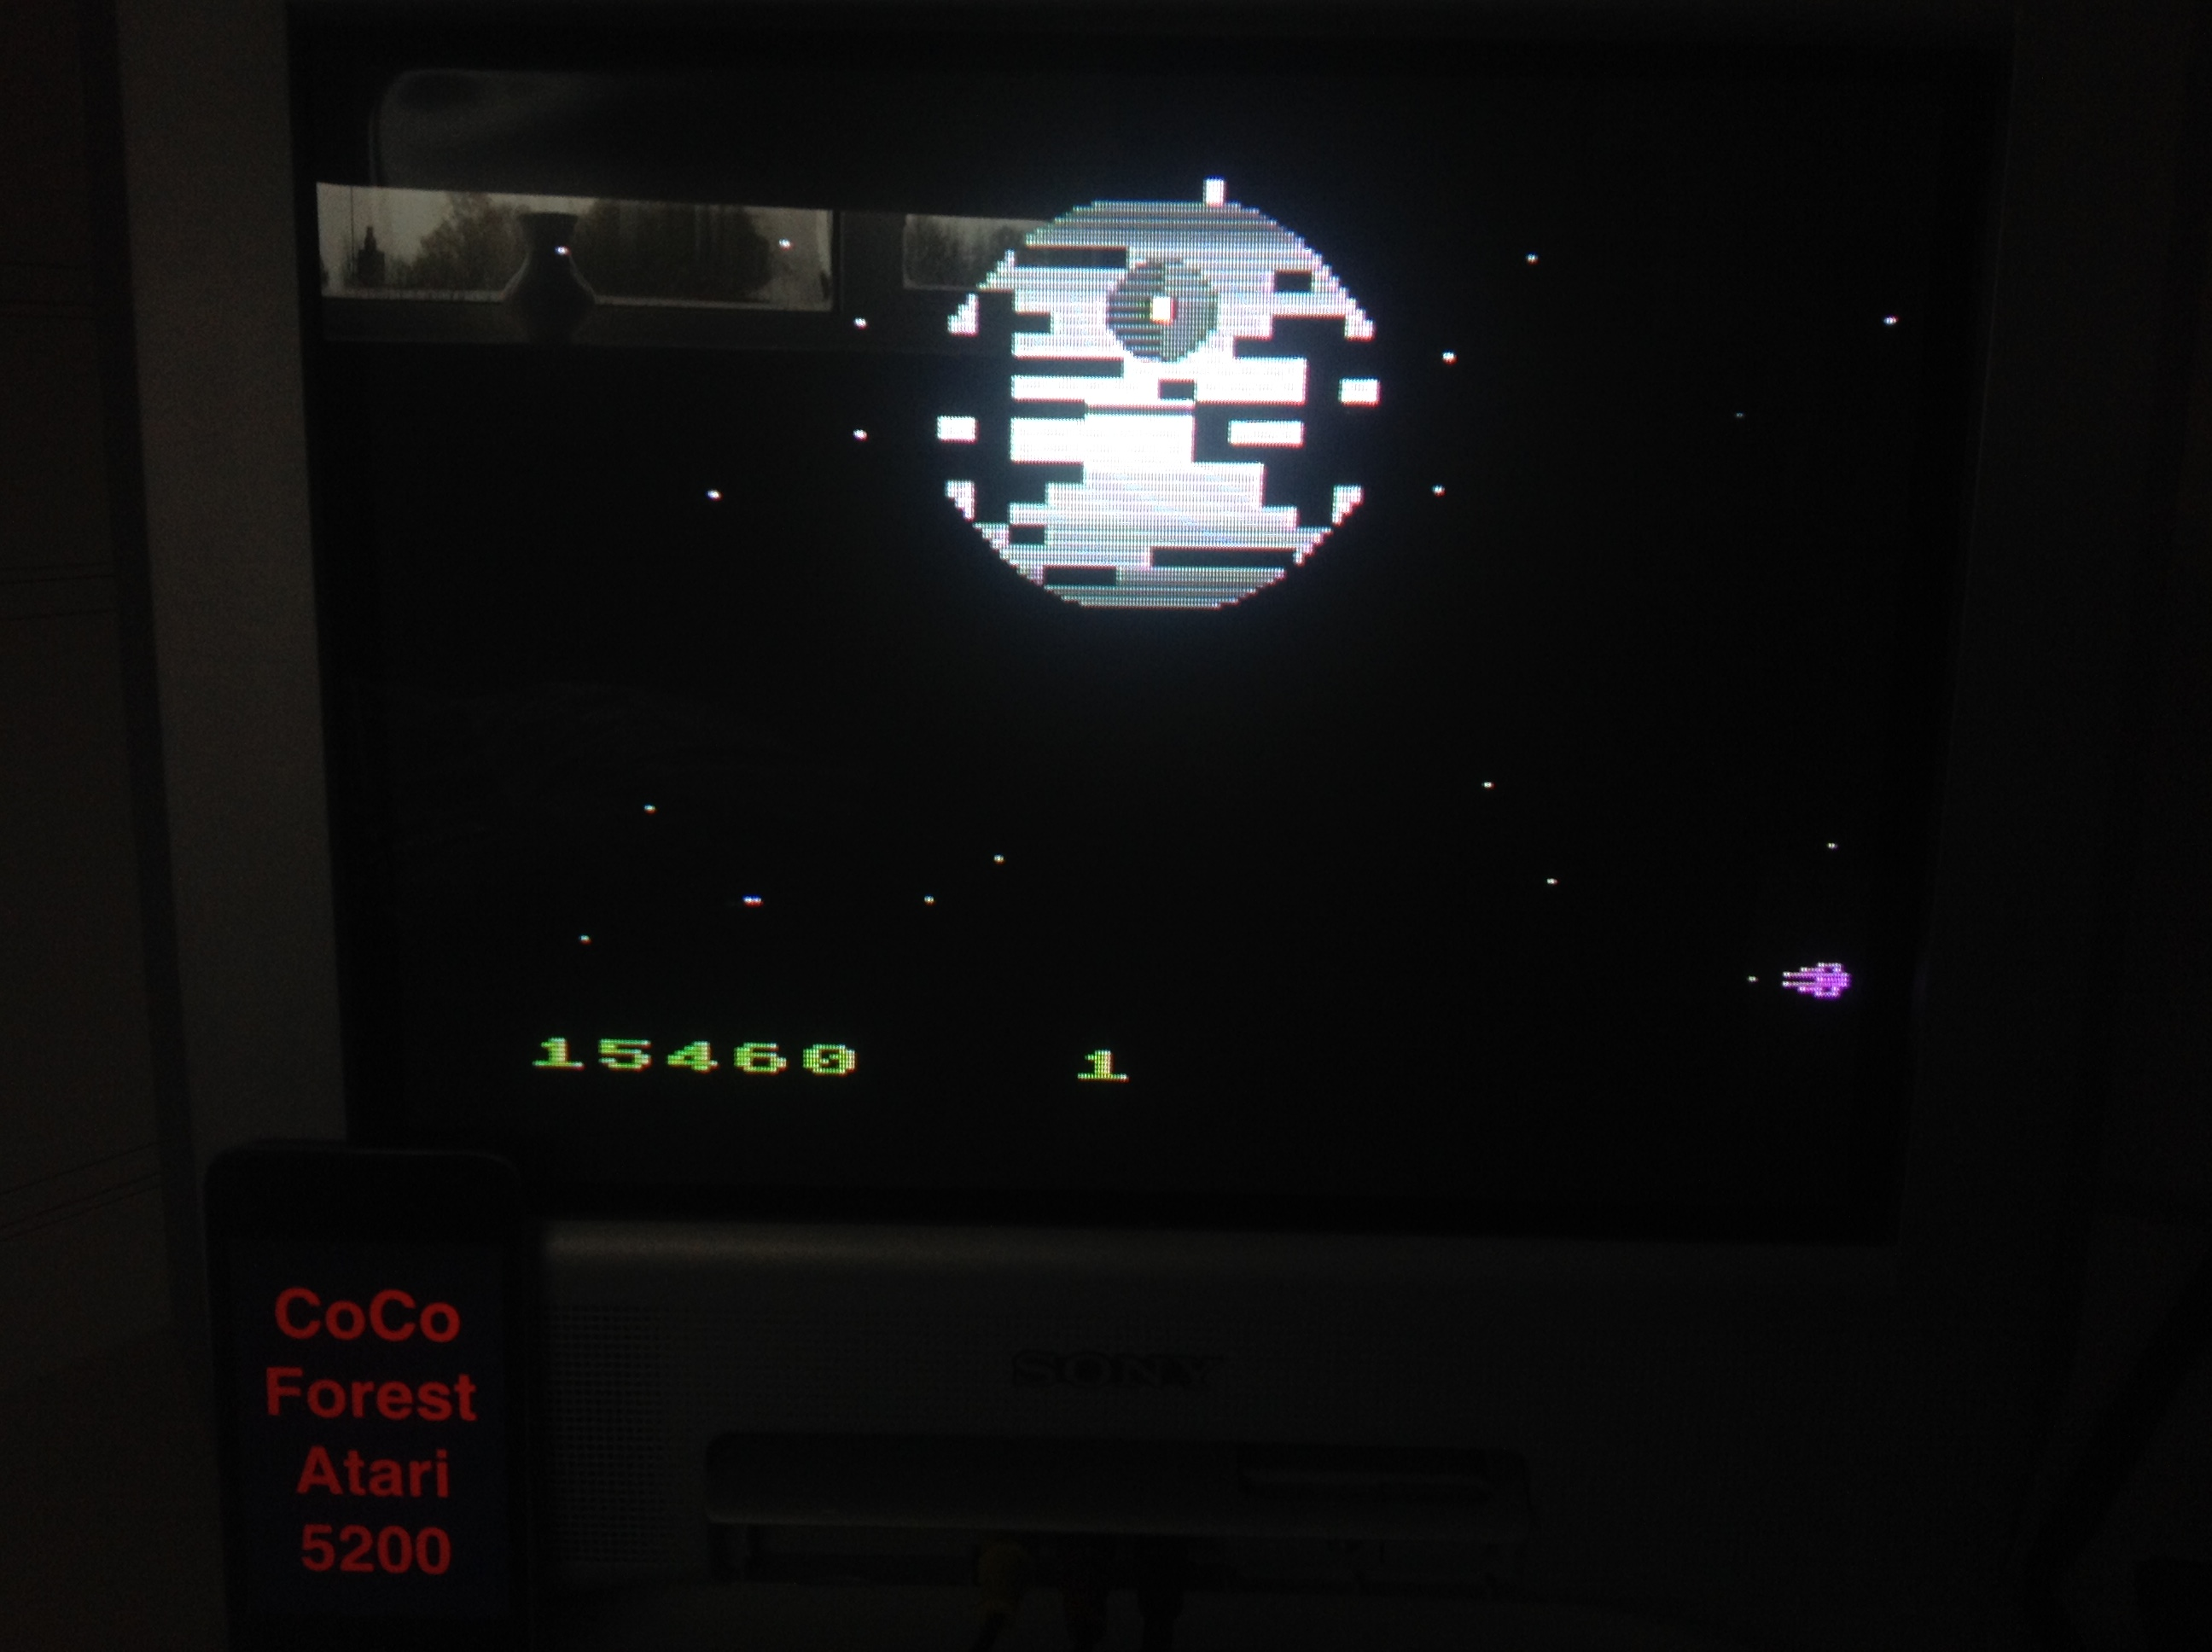 CoCoForest: Star Wars: Return of the Jedi: Death Star Battle (Atari 5200) 15,460 points on 2015-11-19 04:50:55